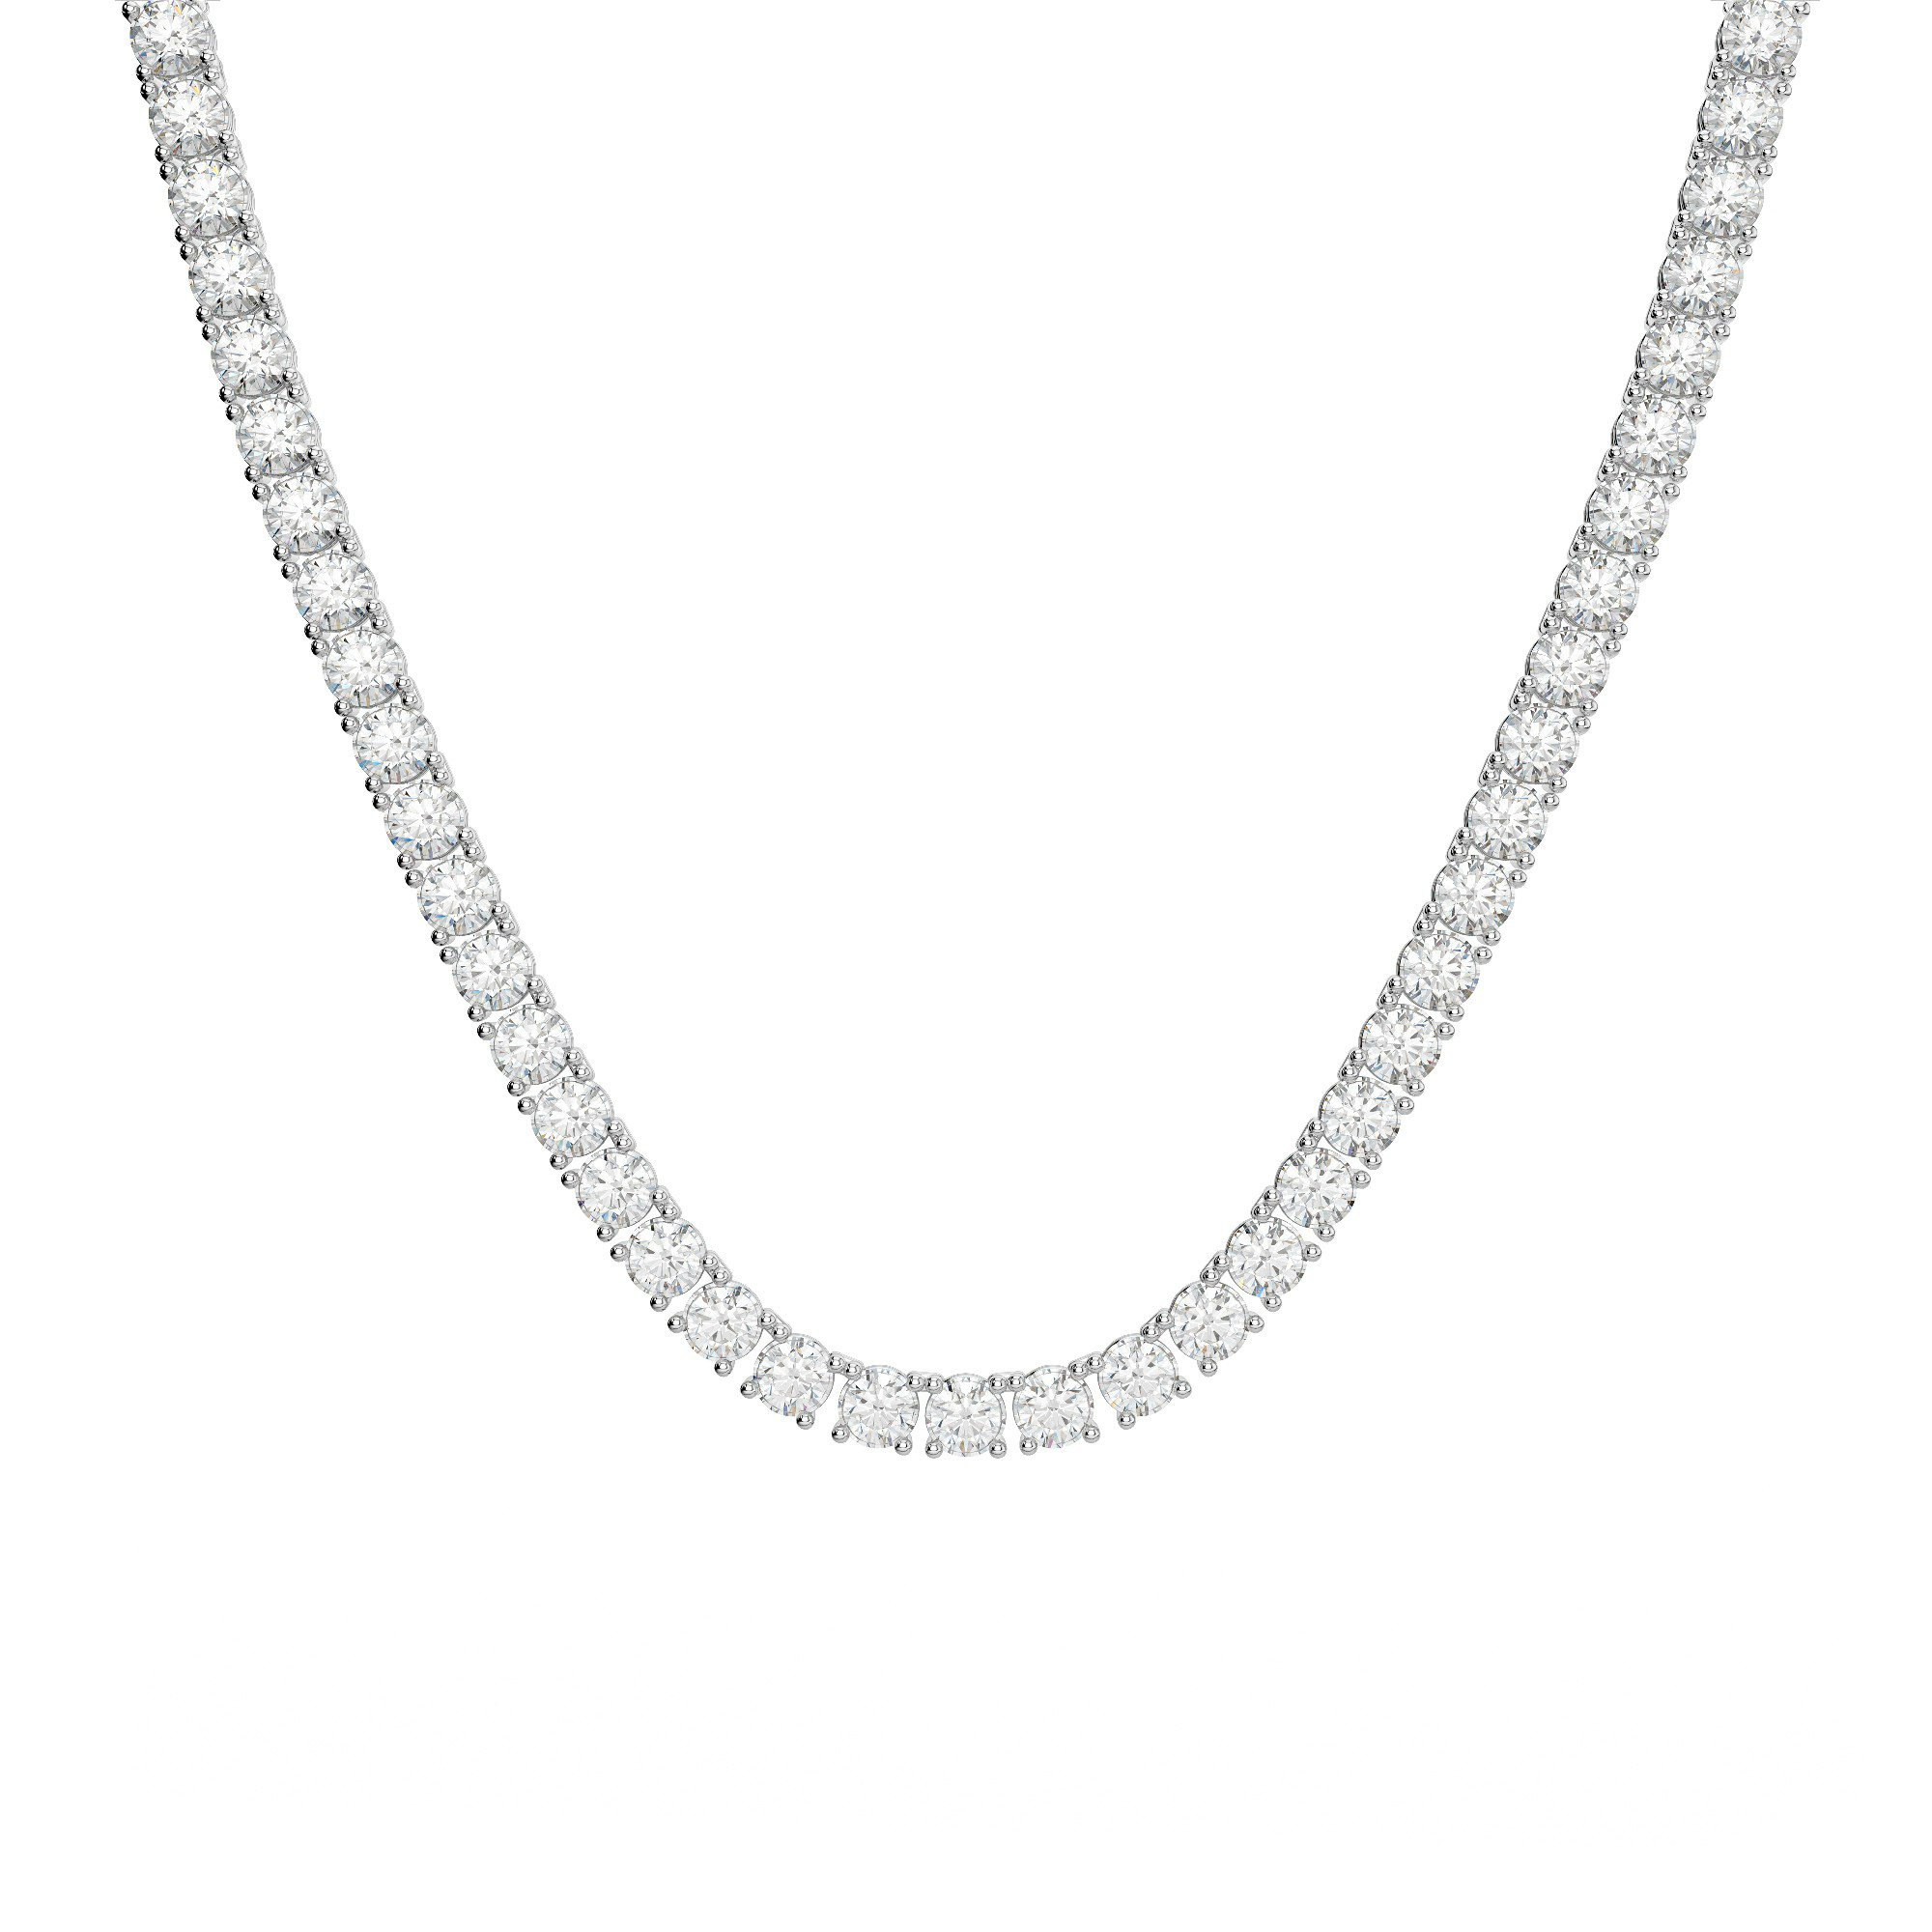 40 Carat Diamond Tennis Necklace